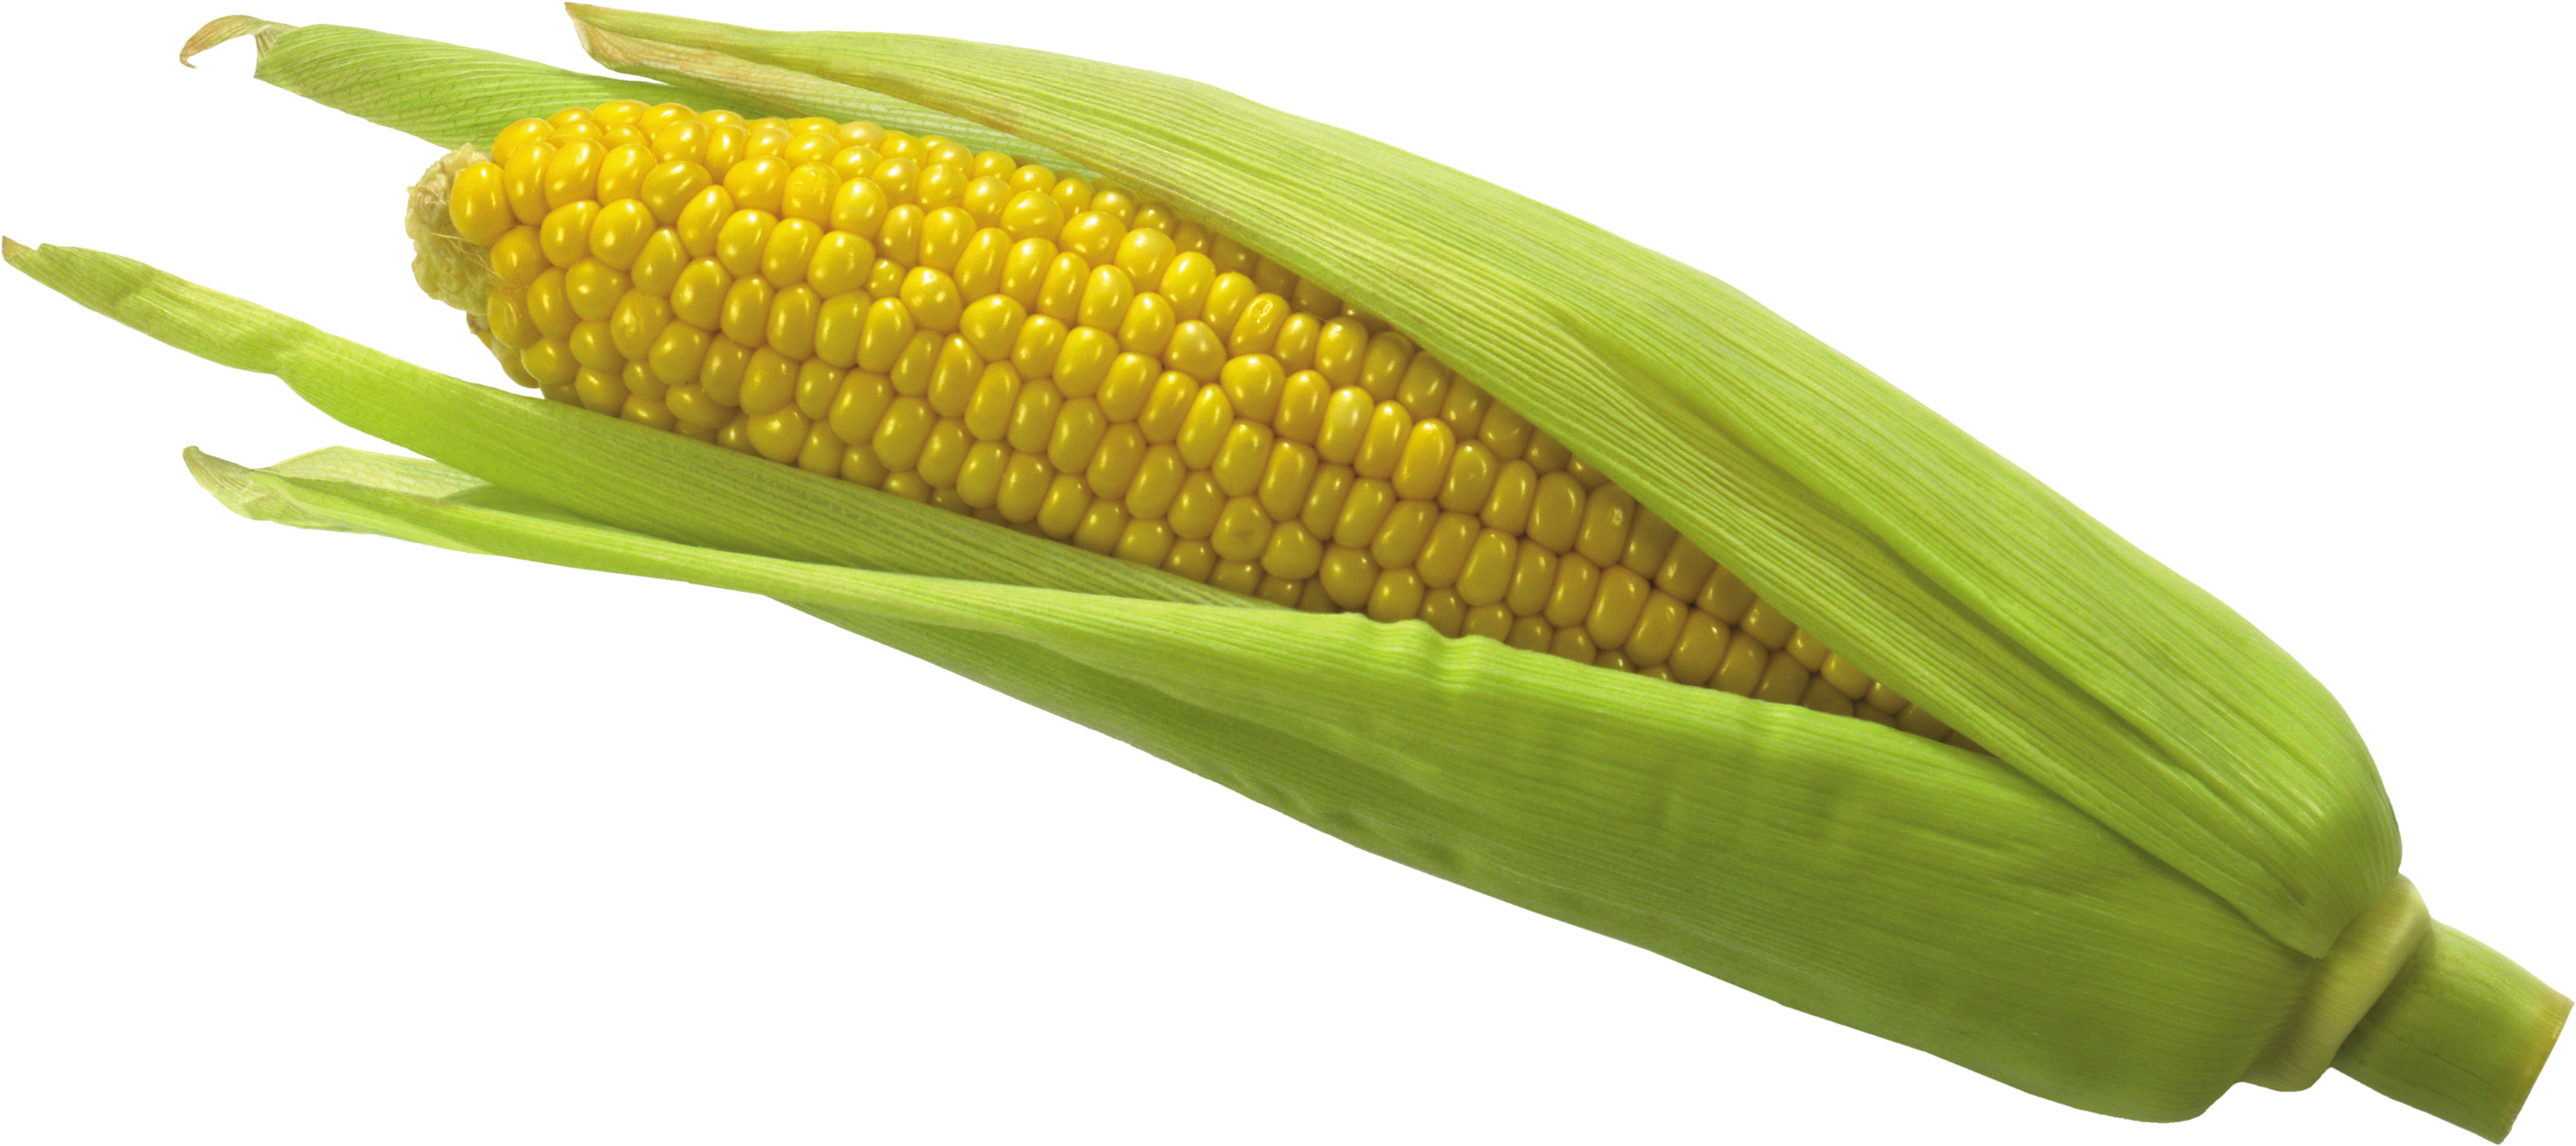 Mexican corn on the cob png. Image